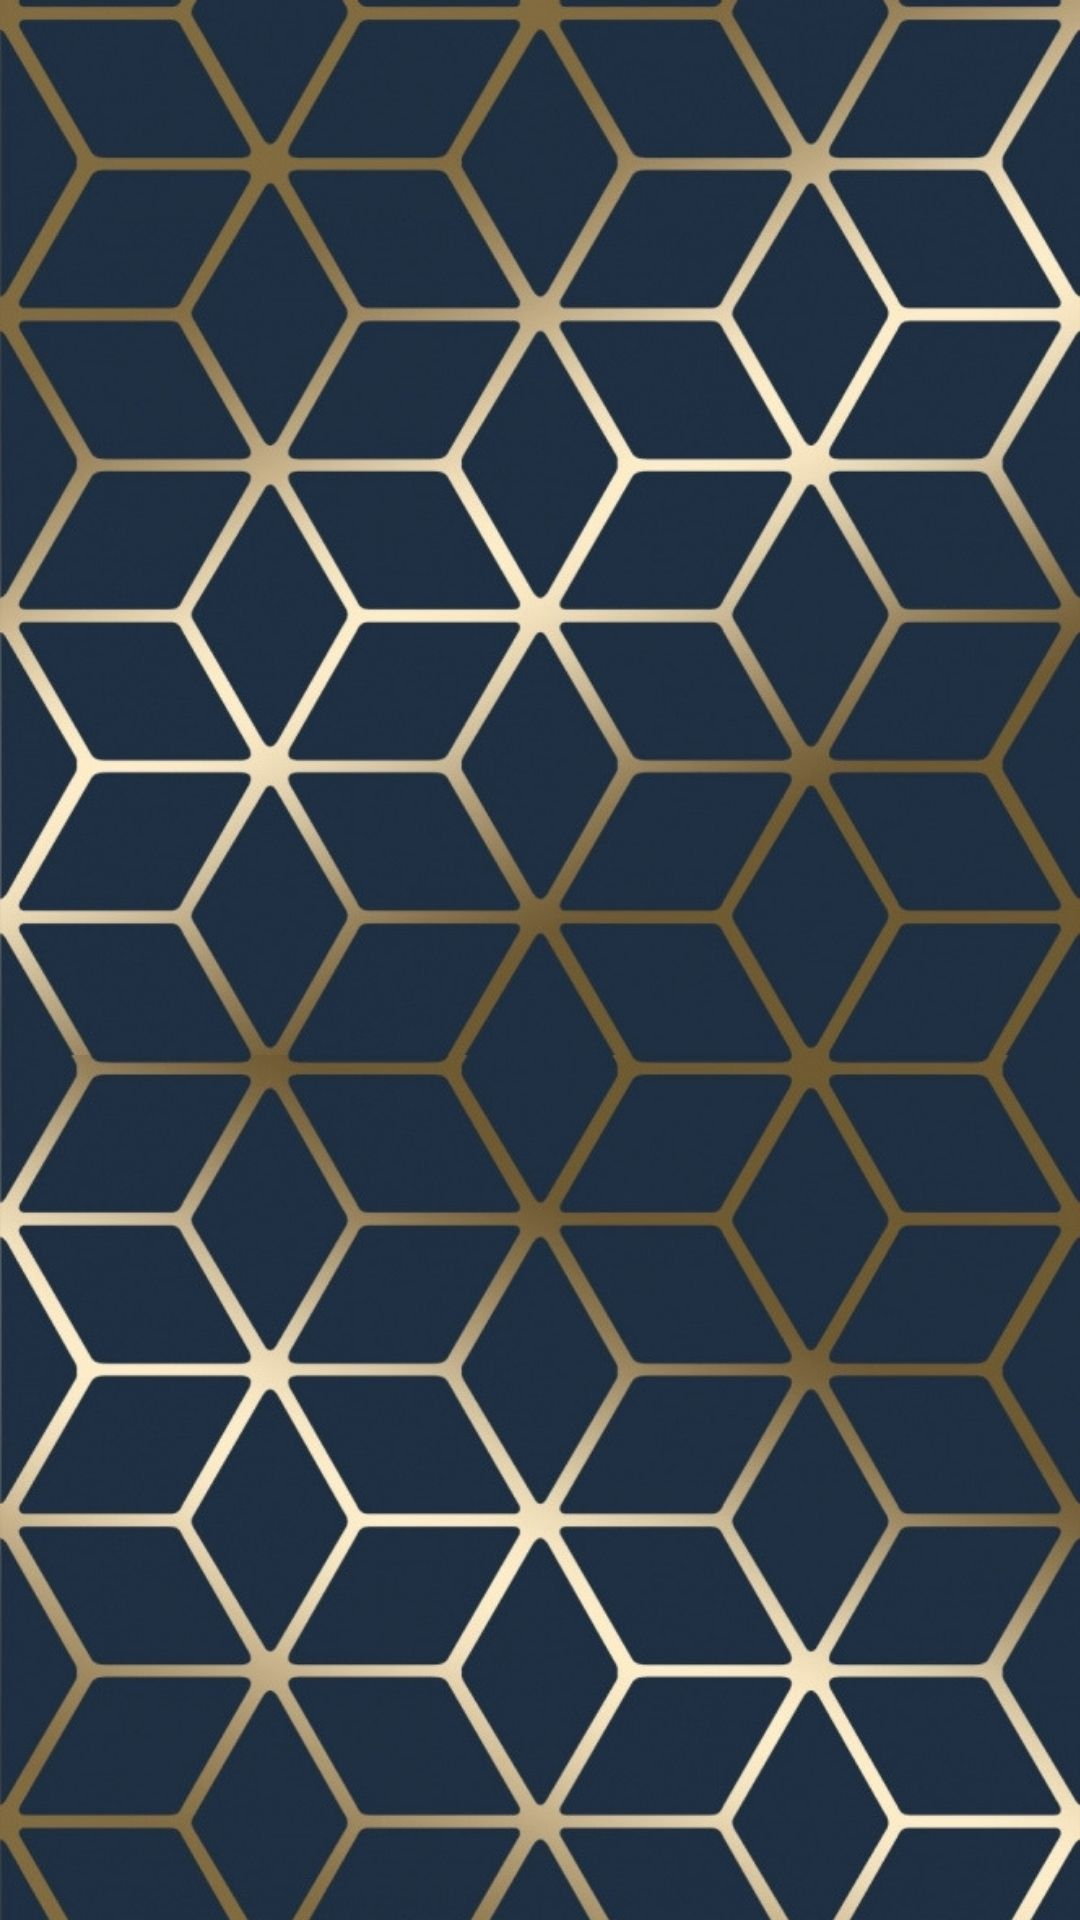 Cubic Shimmer Metallic Wallpaper Navy Blue Gold Metallic